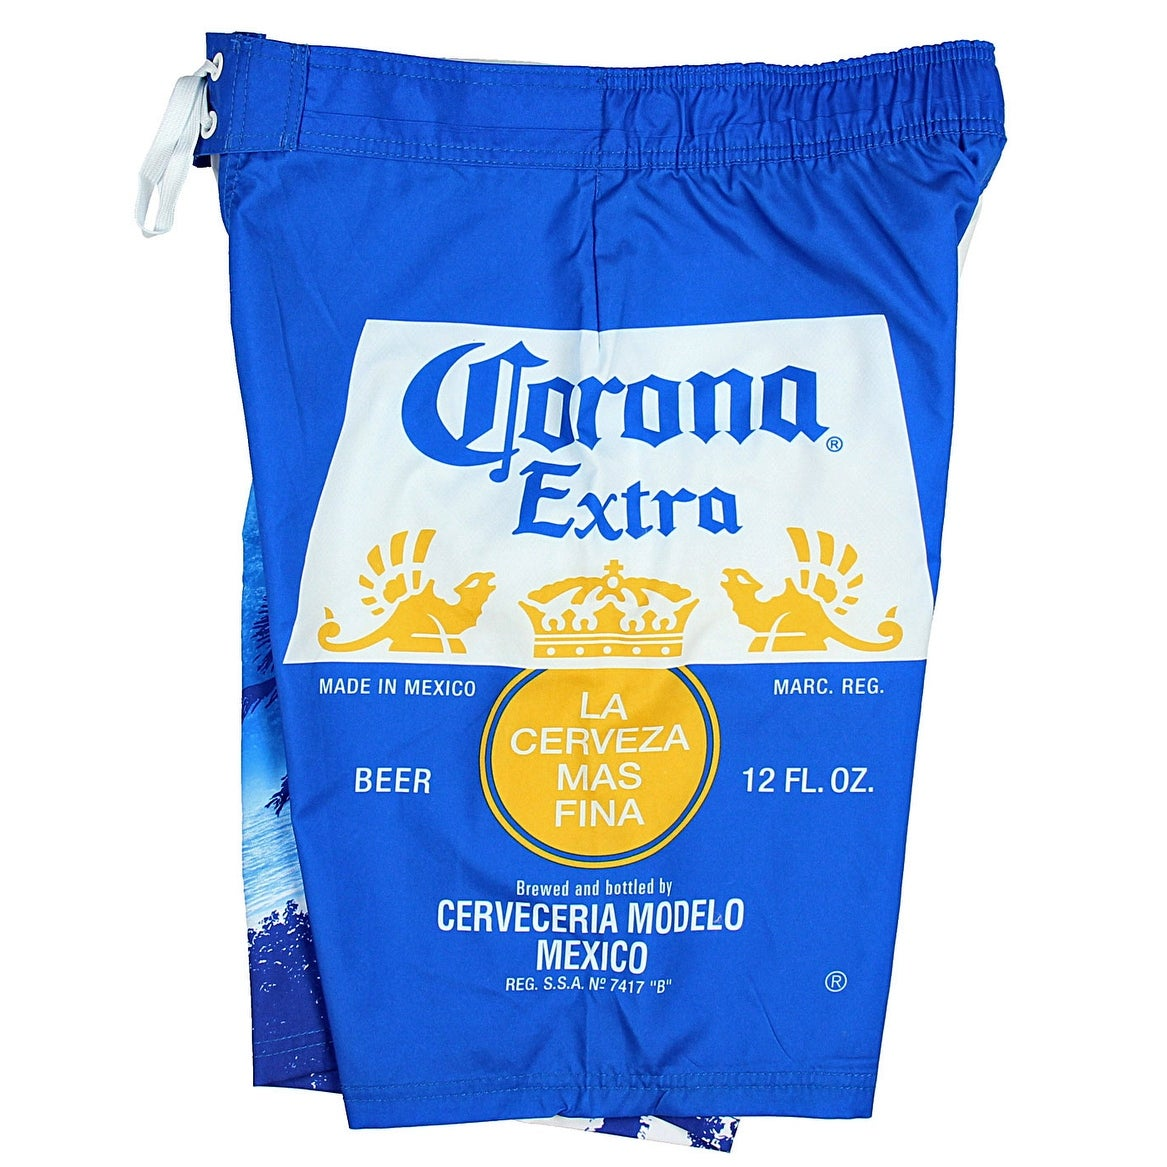 b2cacacafdf83 Shop Corona Extra Bottle Label & Palm Trees Men's Blue Swim Board Shorts -  Free Shipping On Orders Over $45 - Overstock - 20483487